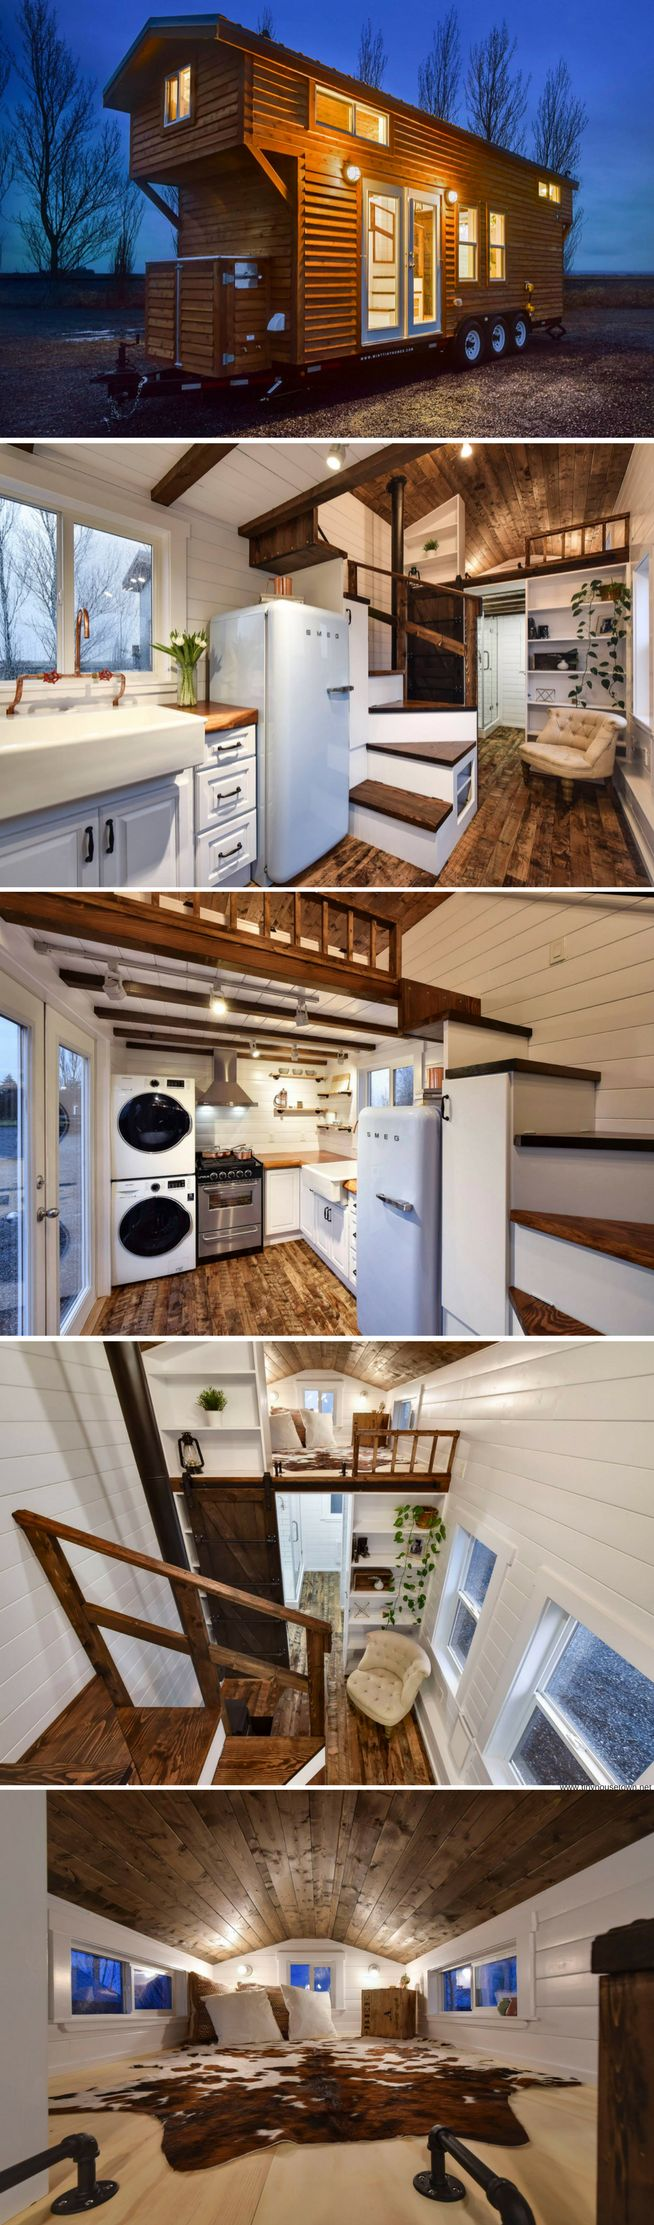 View toward kitchen the alpha tiny home by new frontier tiny homes - Rustic 24 Tiny House